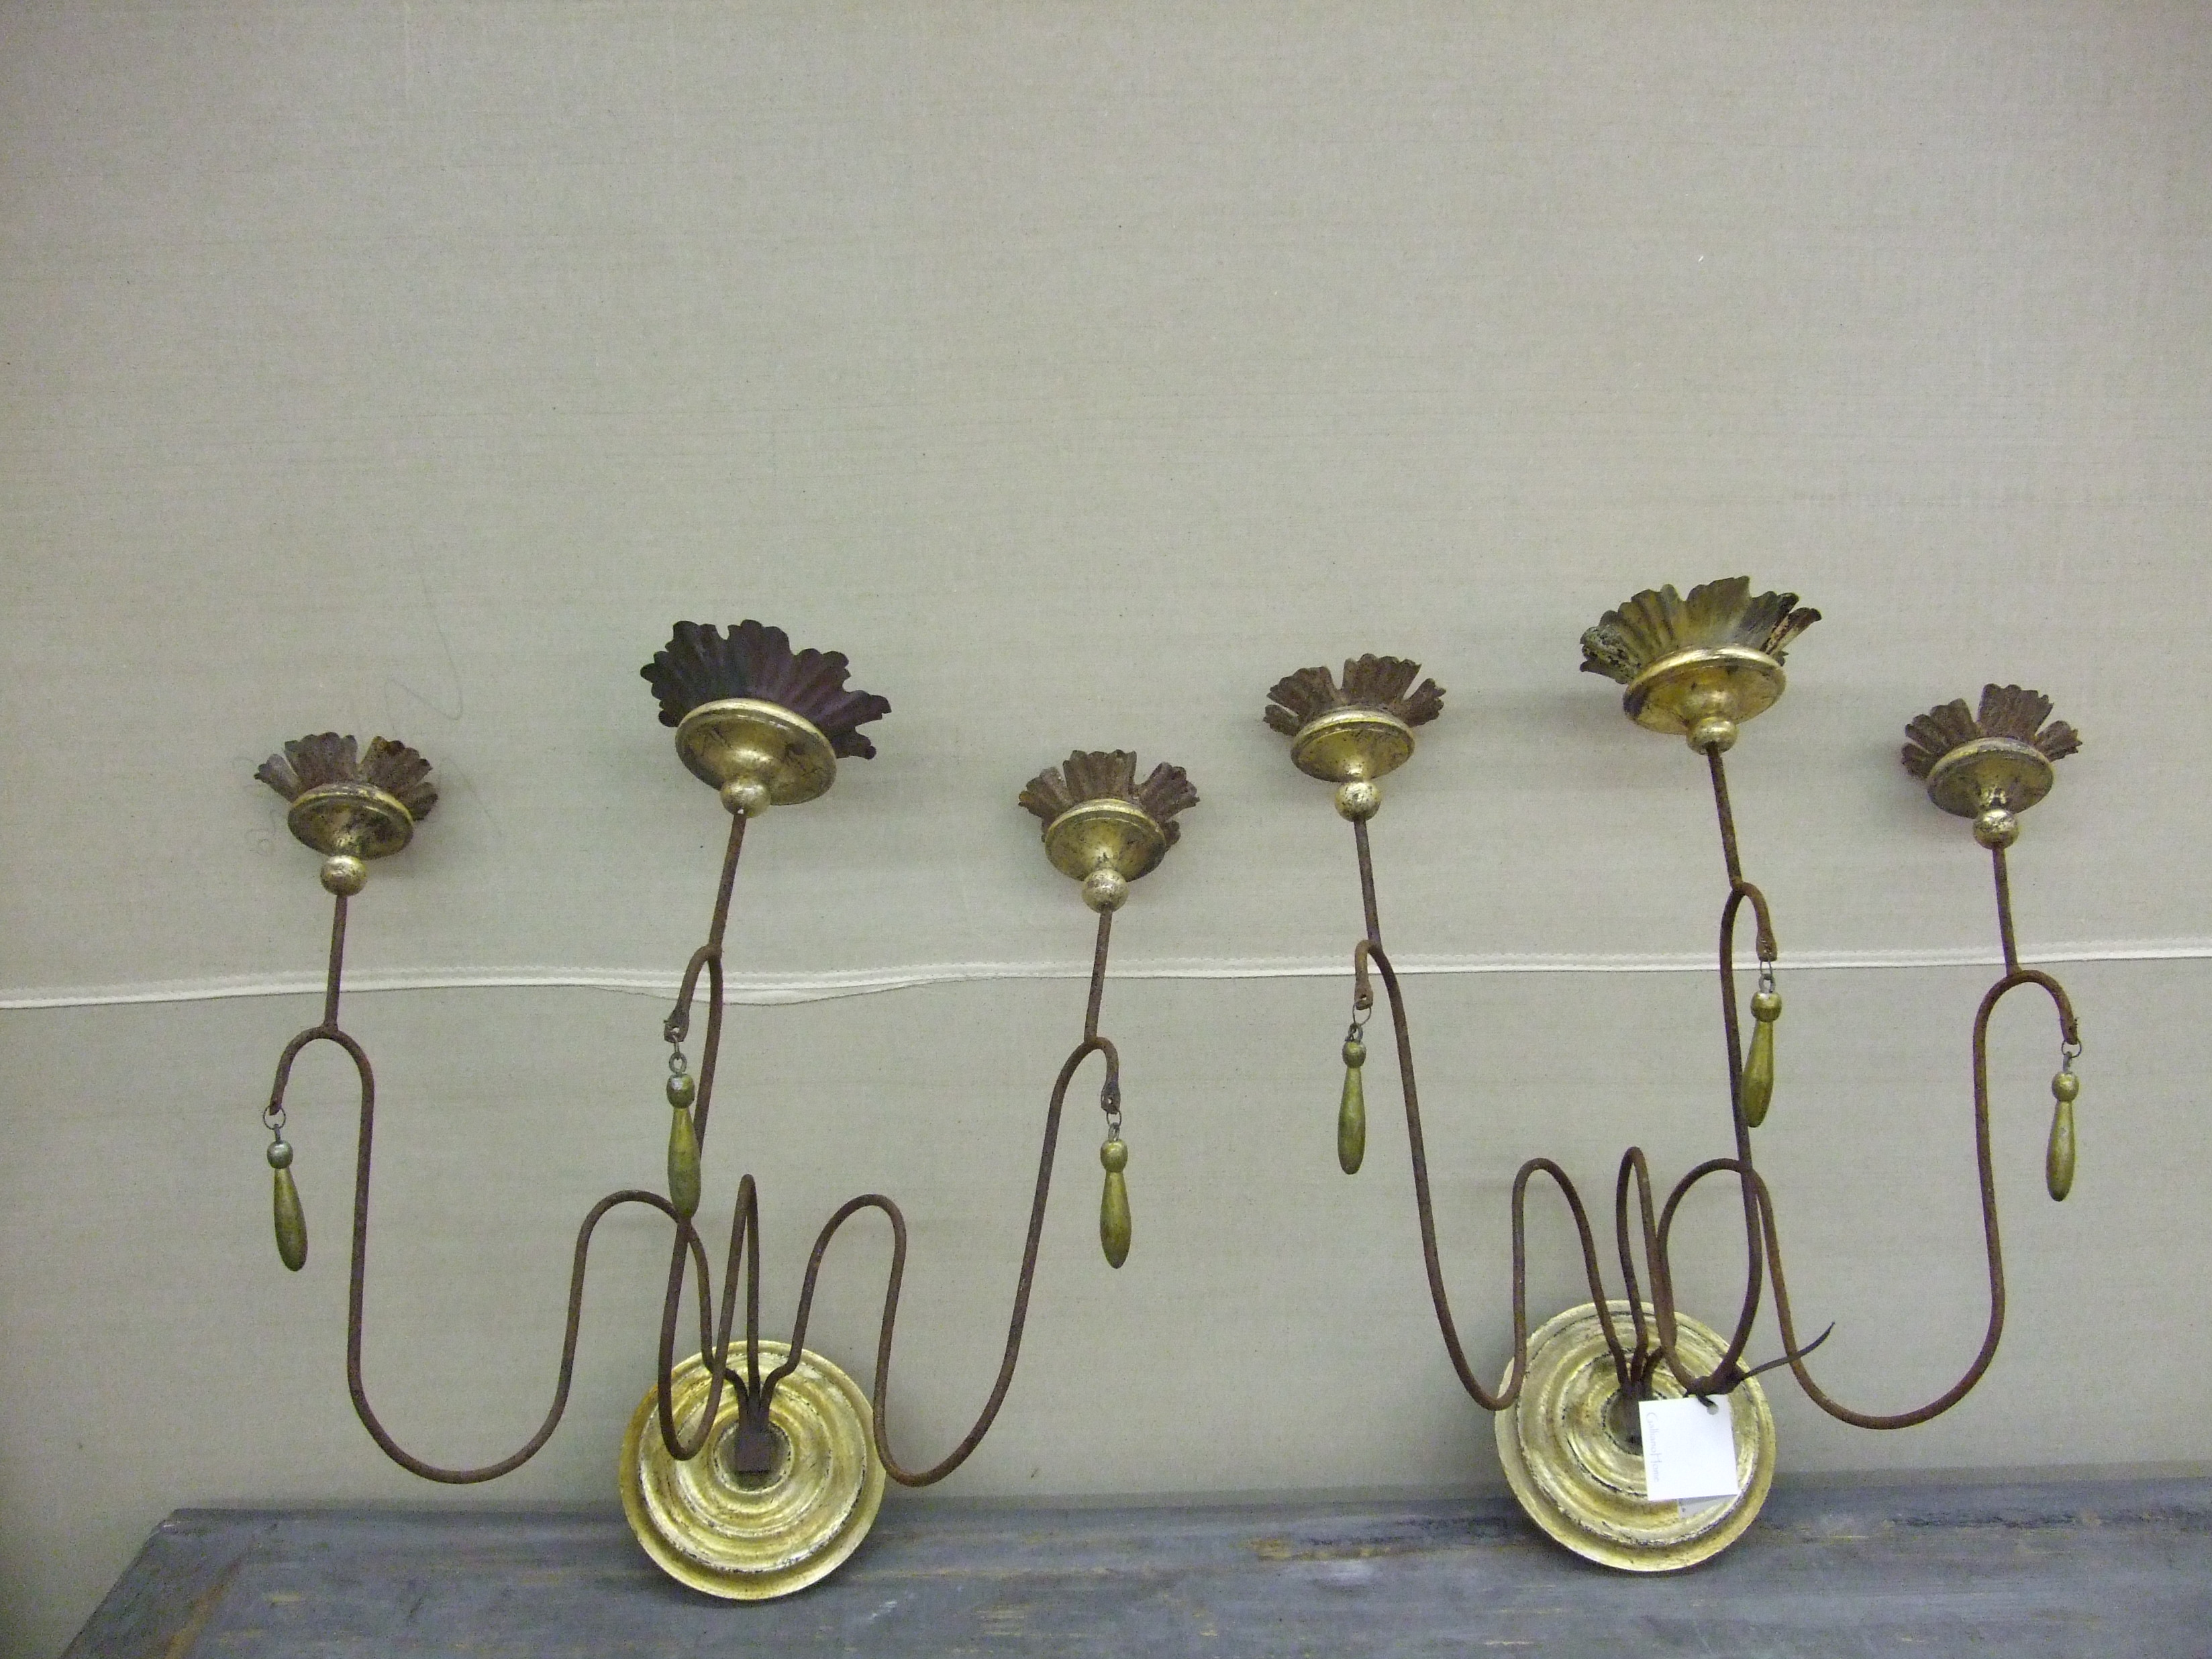 Iron and wood gilded sconces